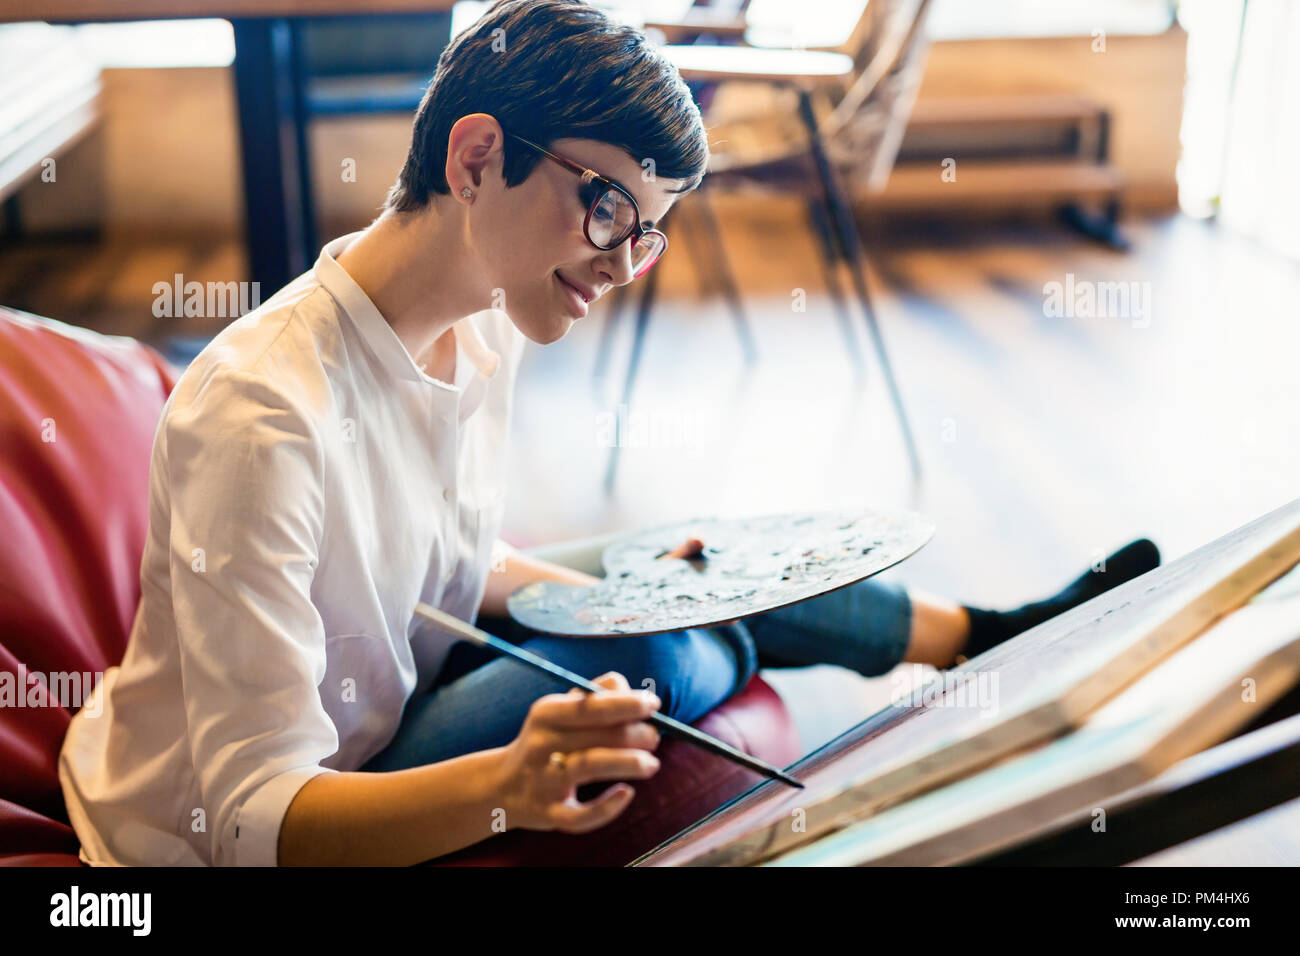 Female artist painting with palette and paintbrush - Stock Image